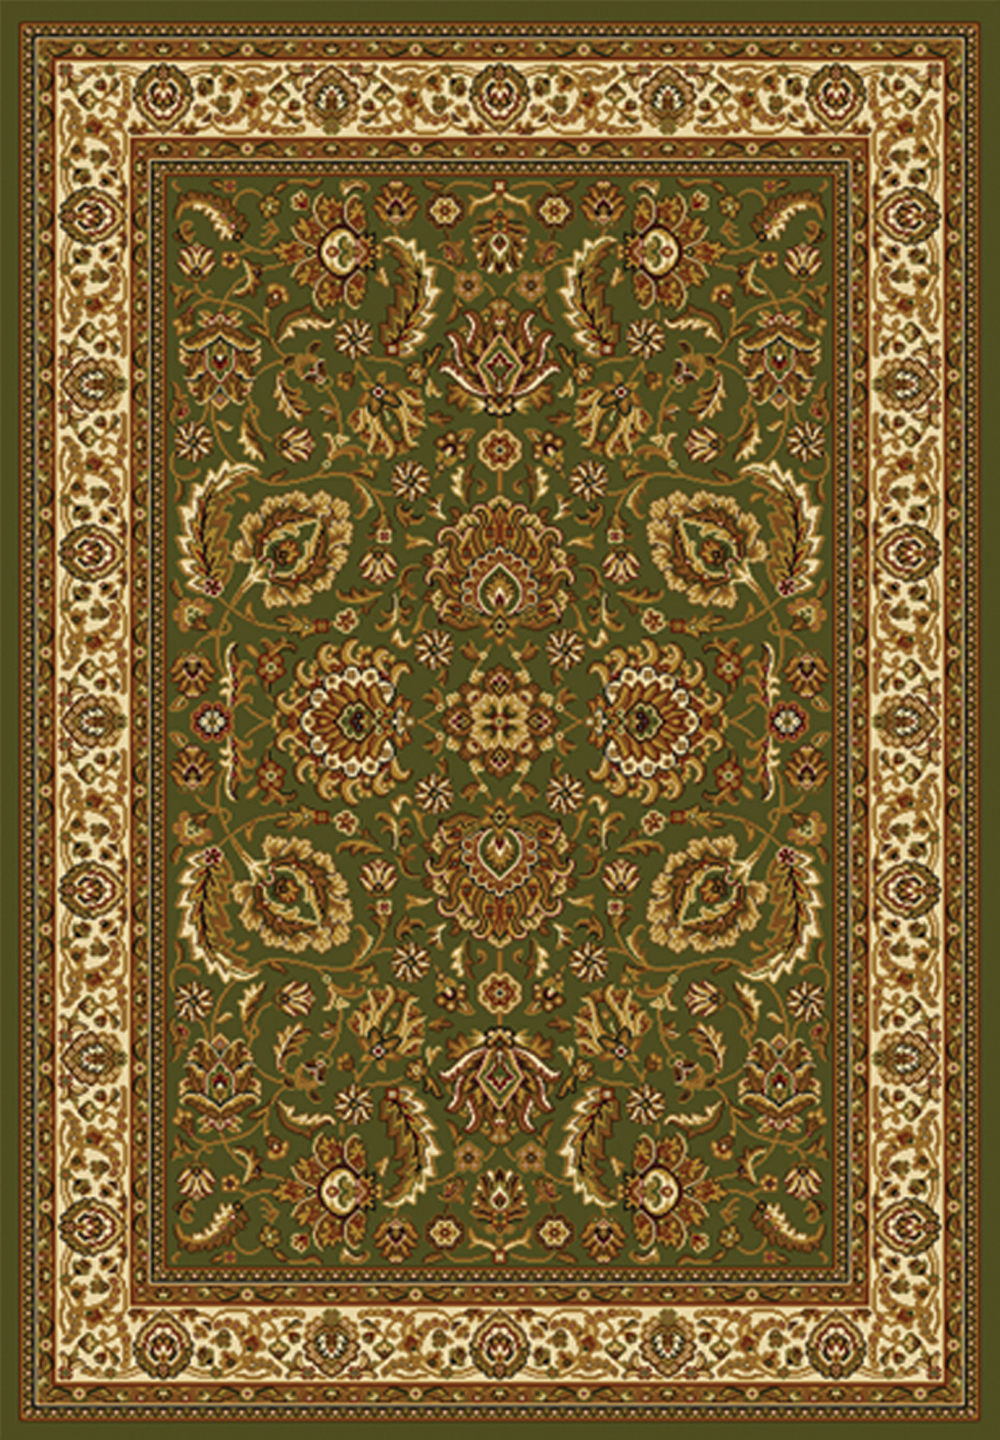 Green Ivory Oriental Area Rug Persian Border Floral Leaves